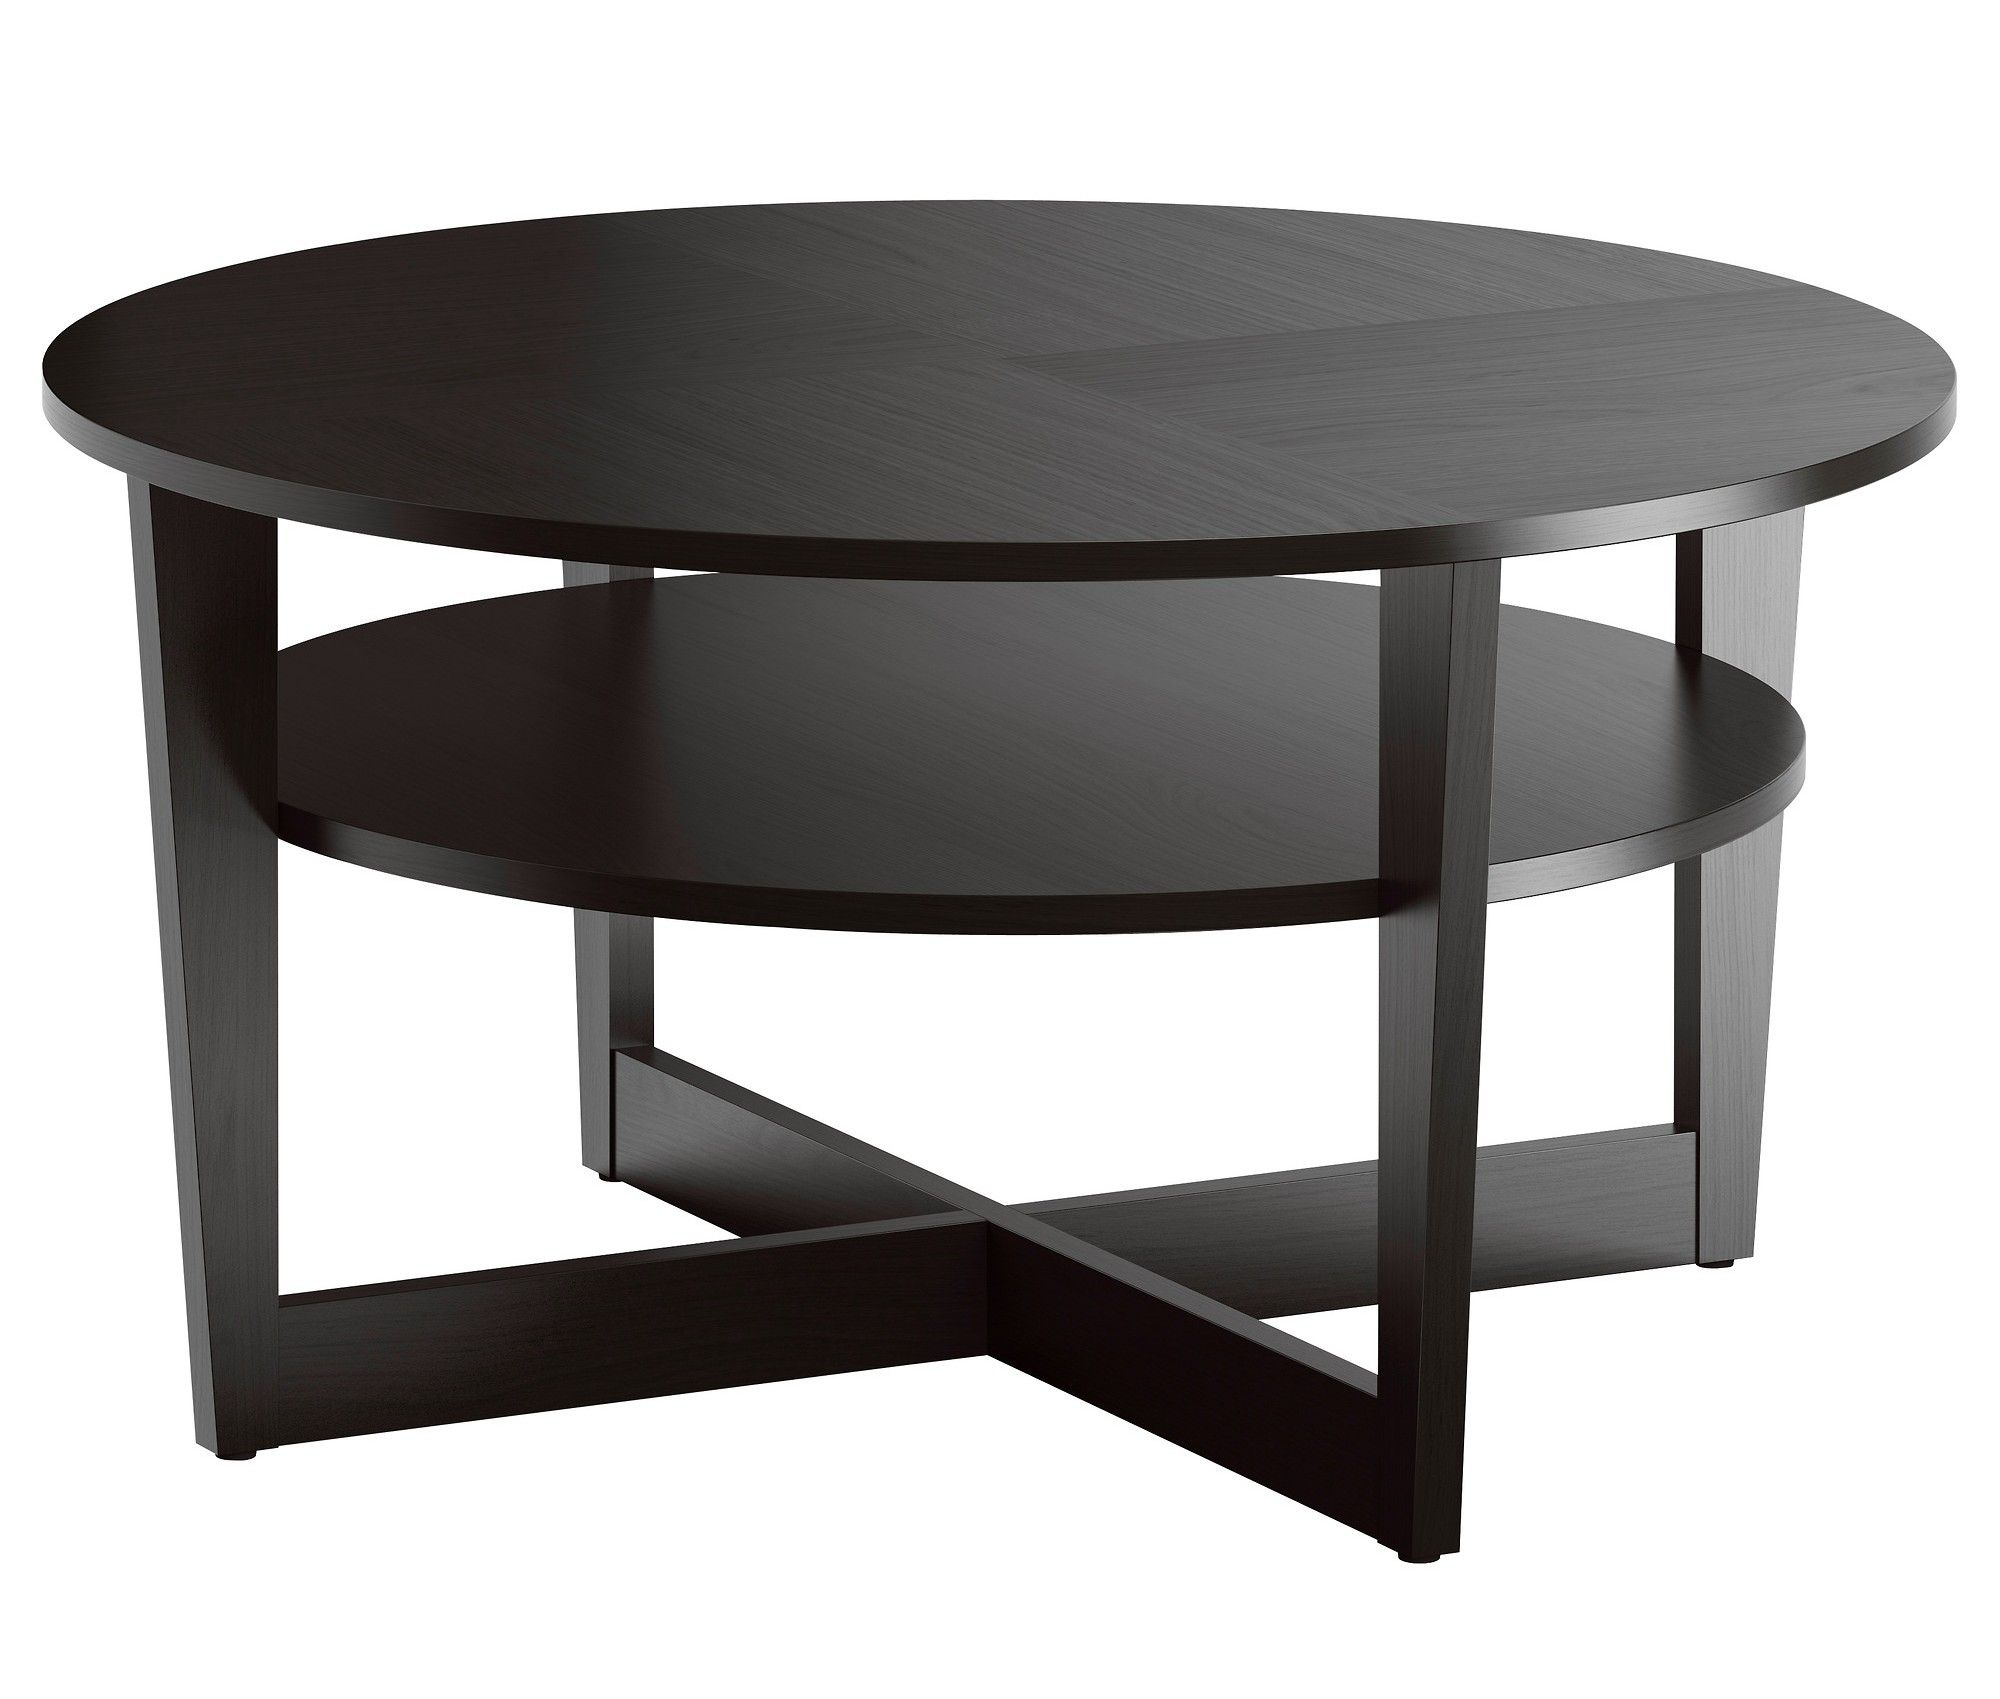 Round Coffee Table Dimensions: Average Coffee Table Size Ideas